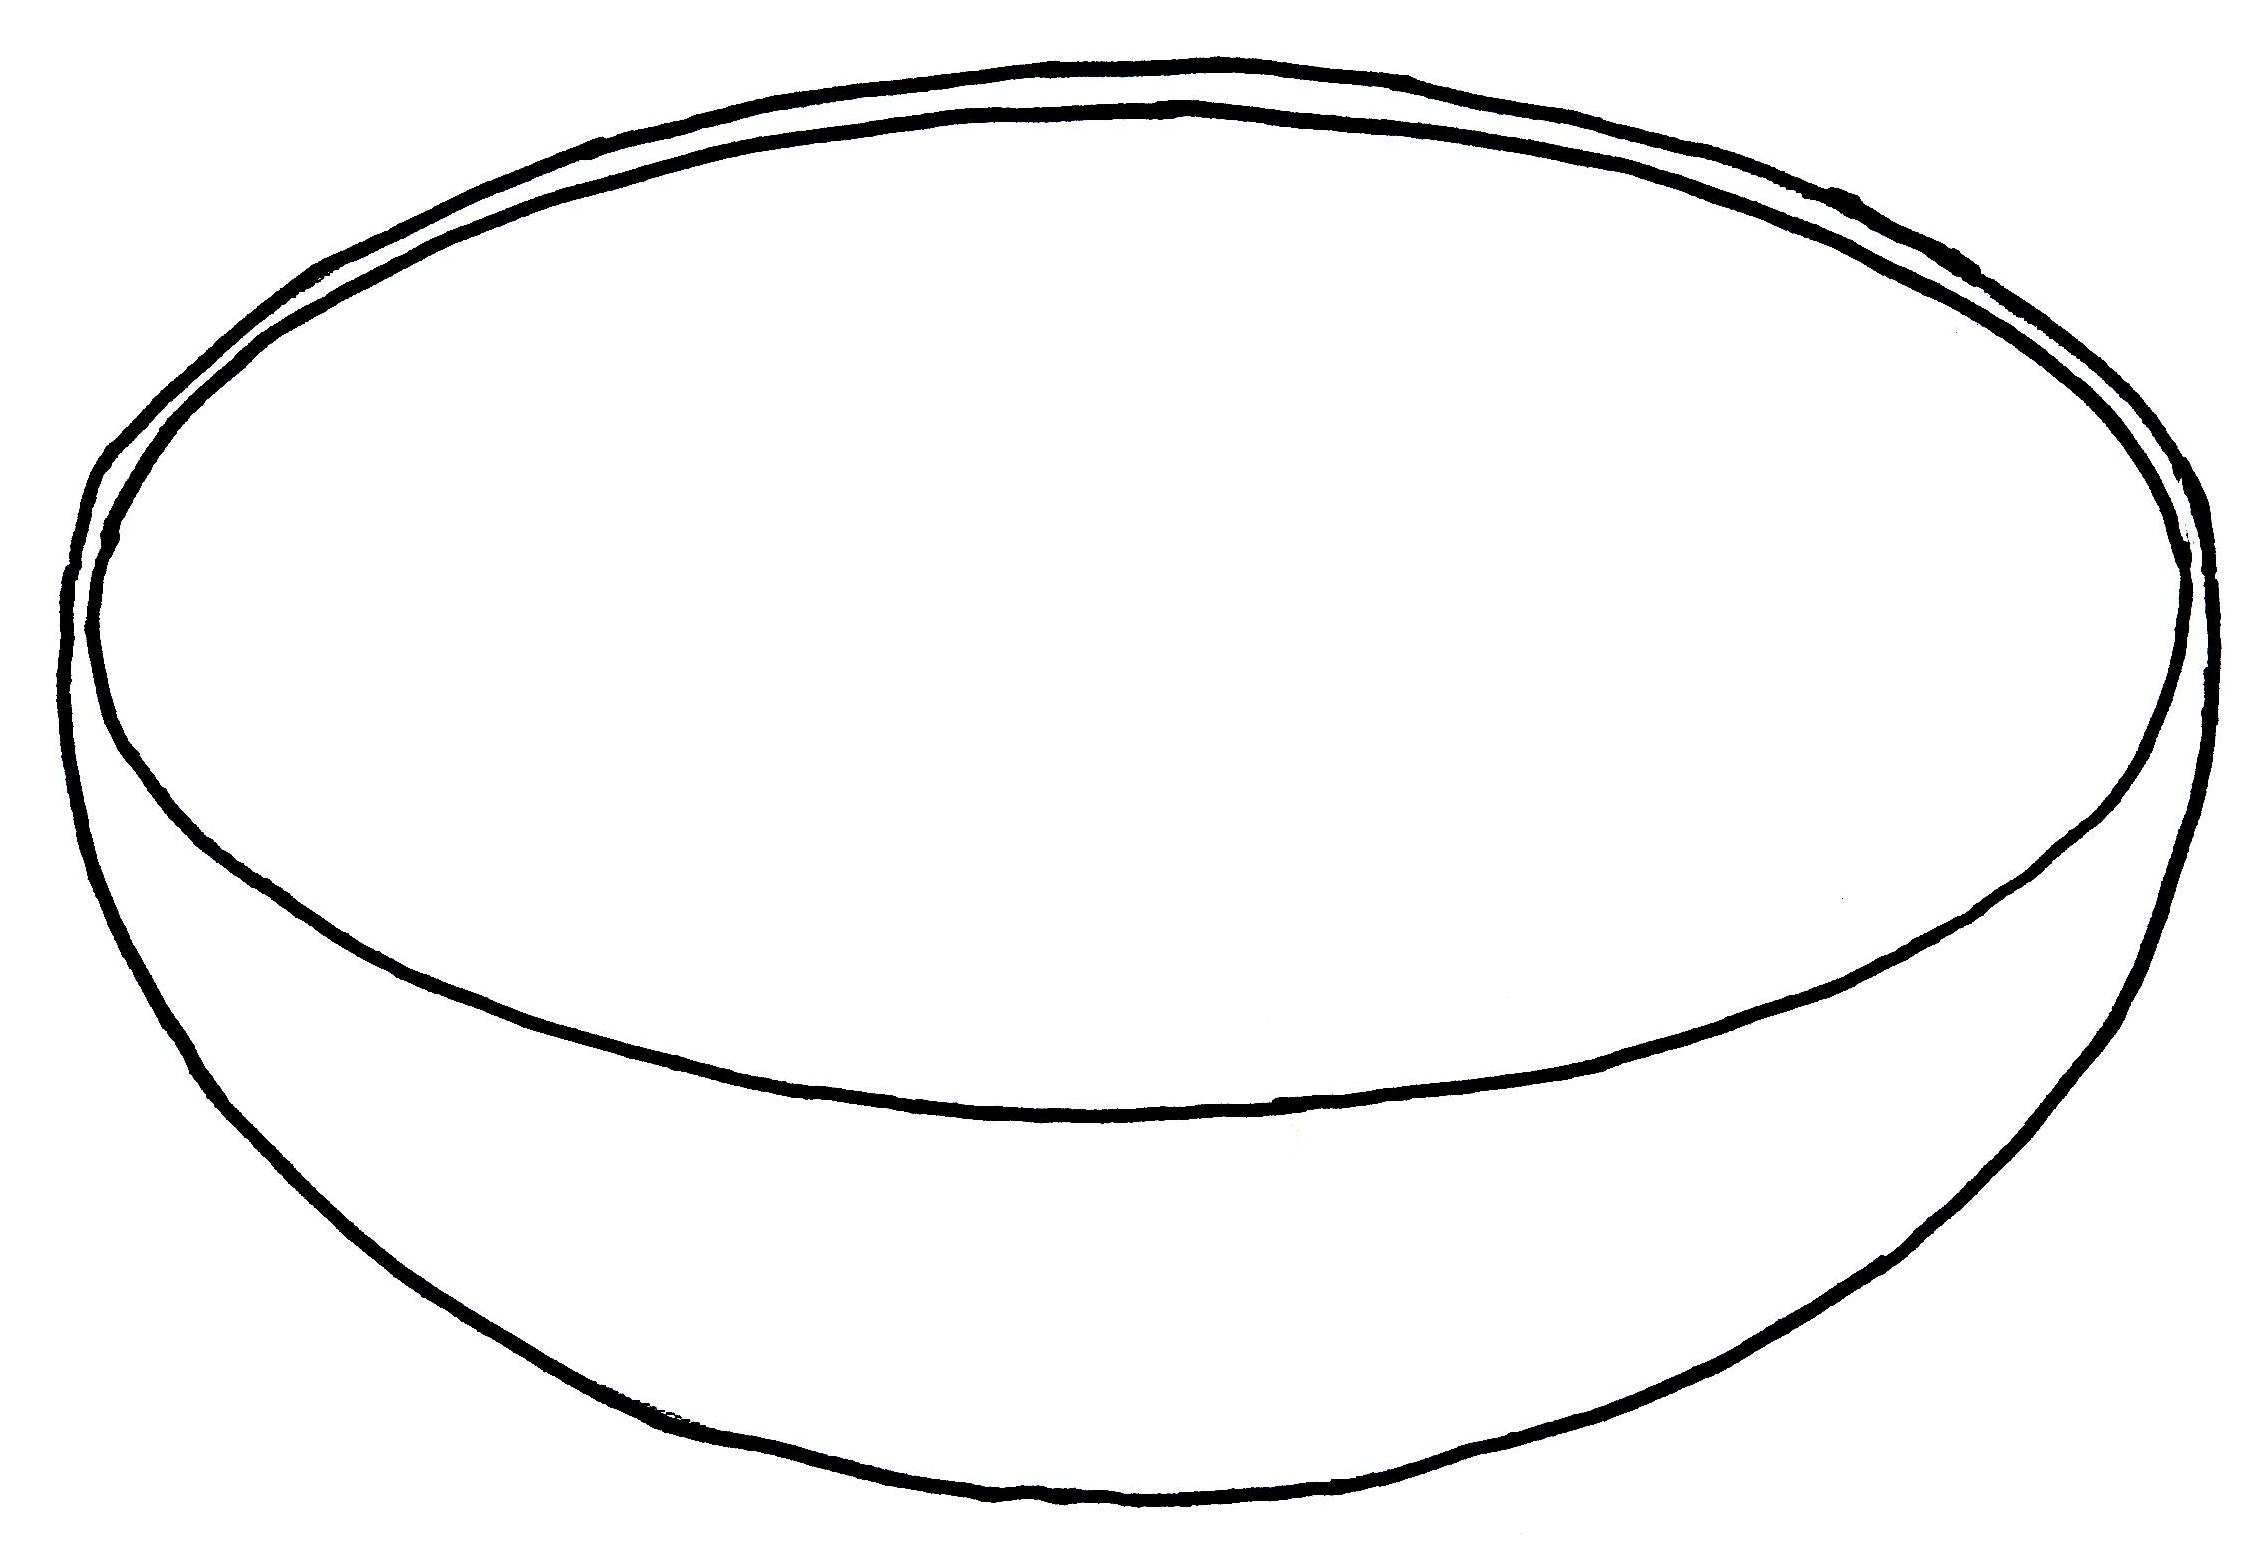 6 Best Images Of Ice Cream Bowl Template Printable Free